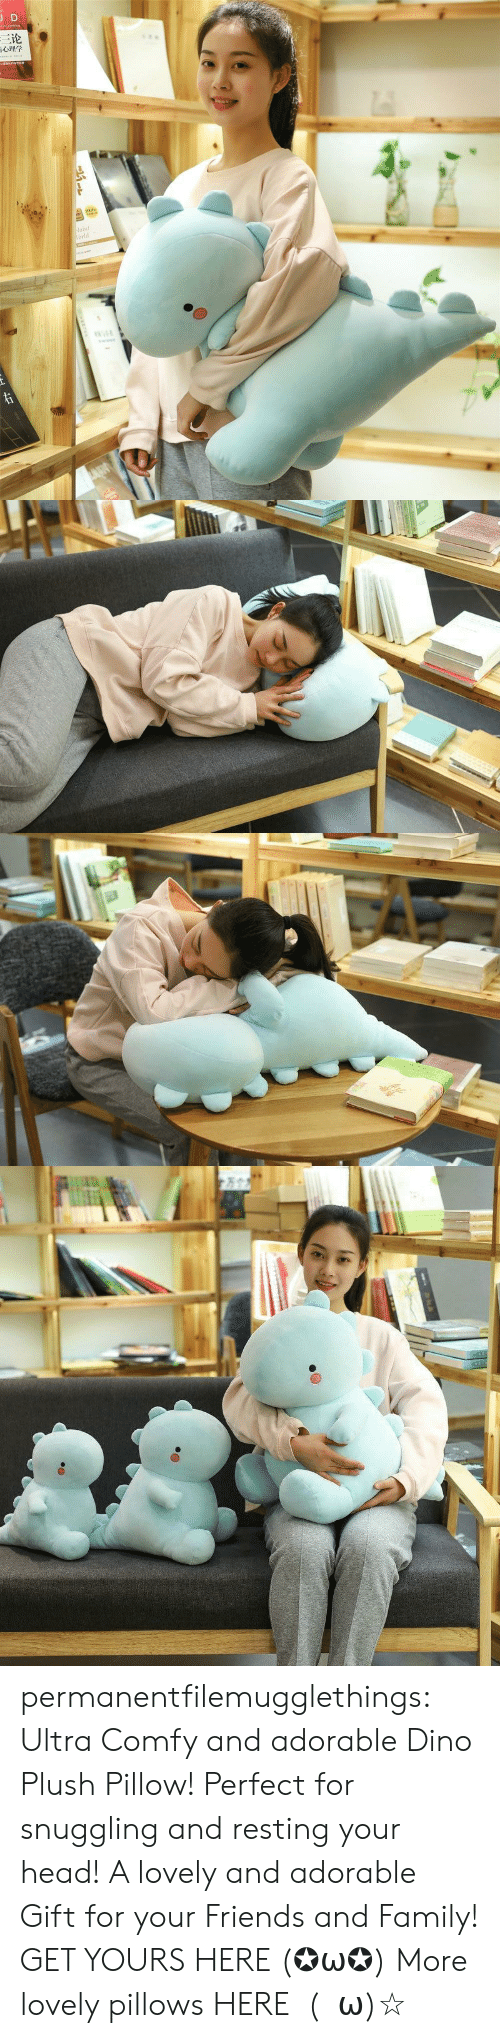 pillows: JD  三论  laint  orld  TDNAR  ww.e permanentfilemugglethings: Ultra Comfy and adorable Dino Plush Pillow! Perfect for snuggling and resting your head! A lovely and adorable Gift for your Friends and Family! GET YOURS HERE (✪ω✪) More lovely pillows HERE  (・ω)☆